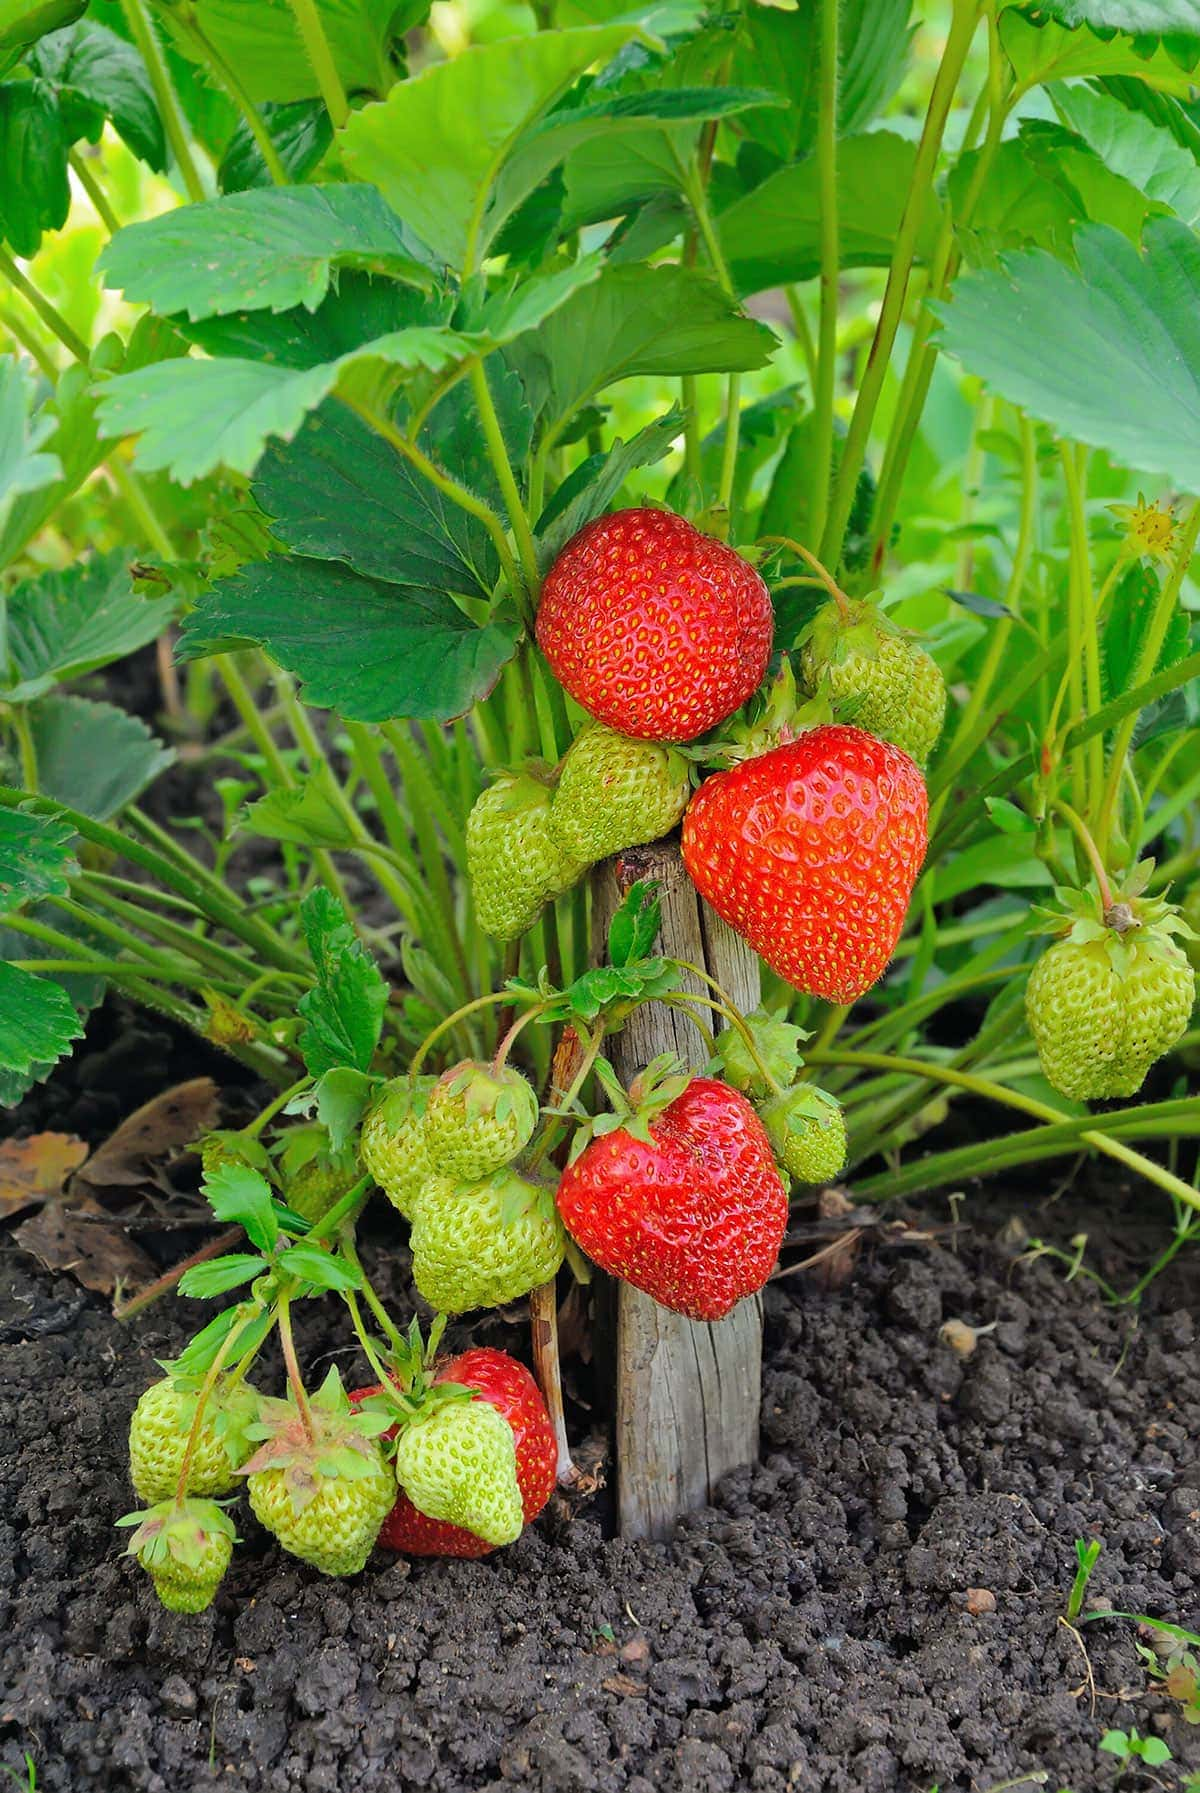 strawberry plant with fruits